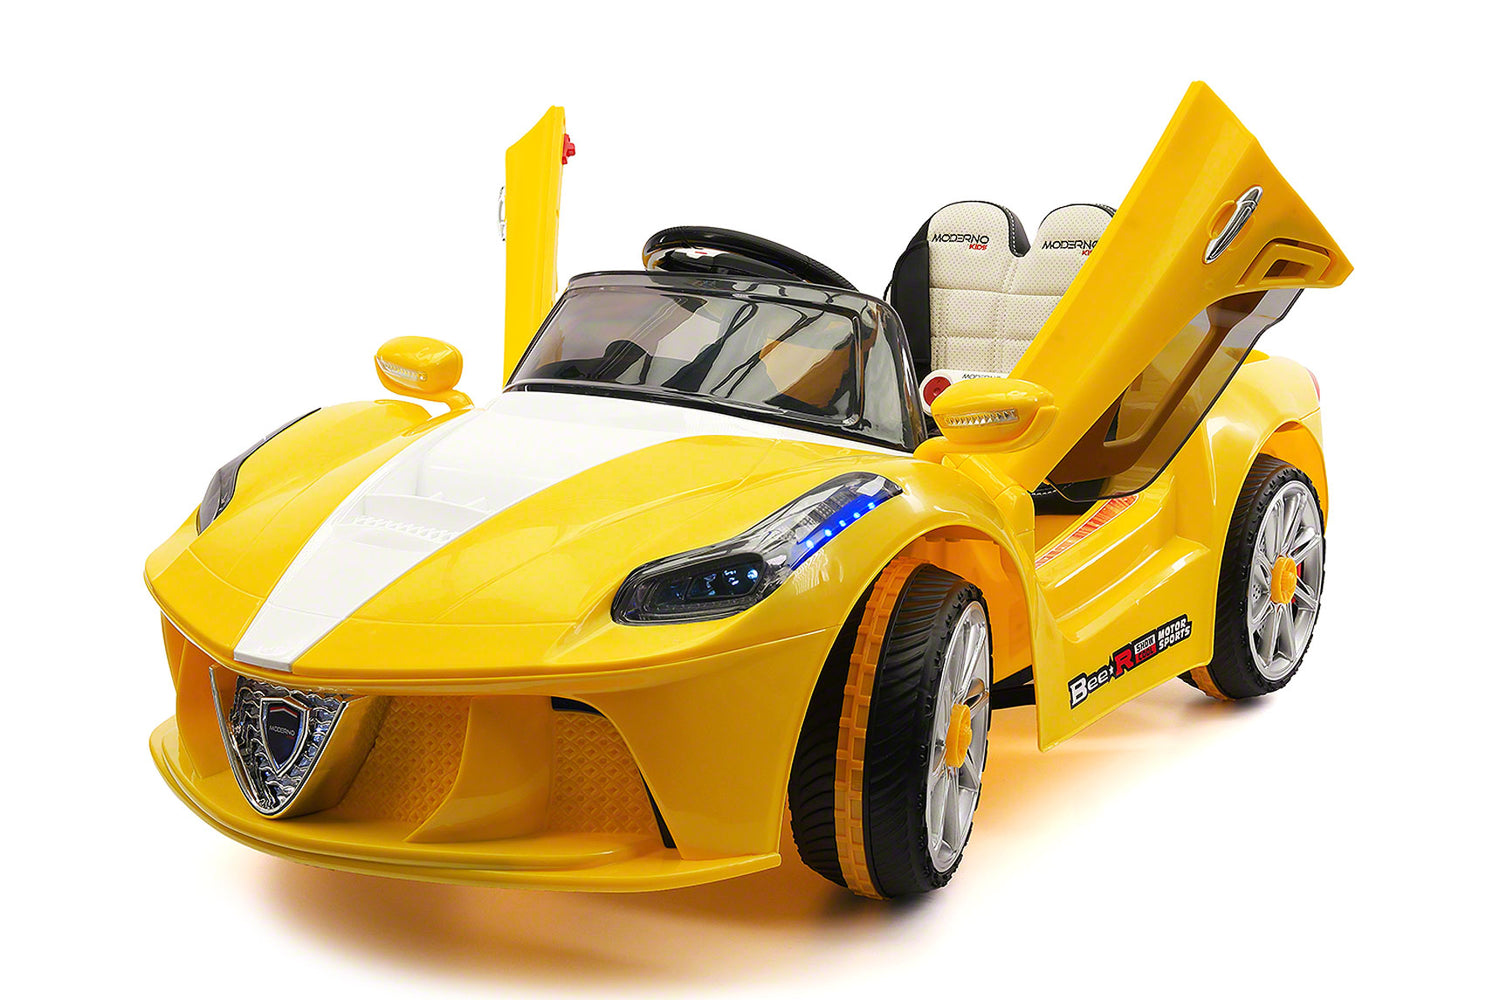 Spider Gt Kids 12v Ride On Car With R C Parental Remote Black Wiring Diagram 12 Volt Toys Yellow